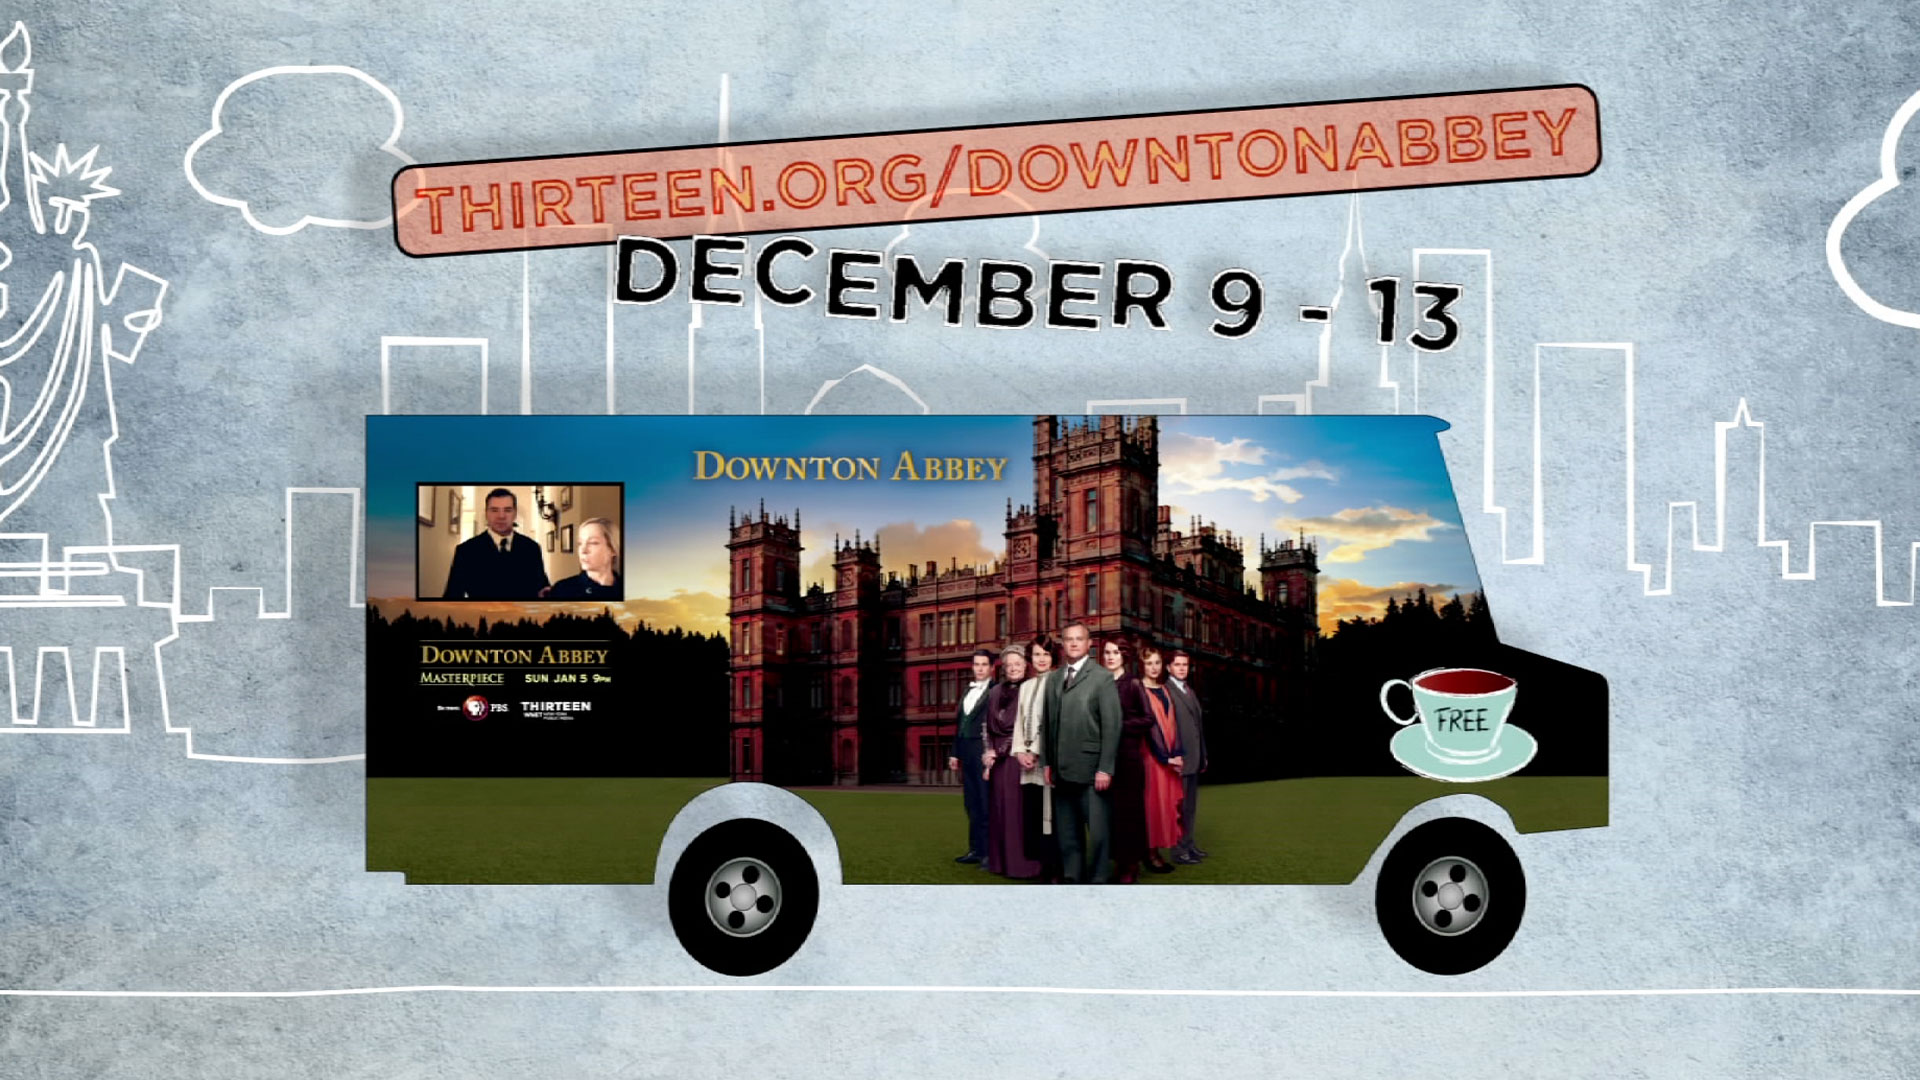 downton abbey tea truck in nyc: locations & pictures